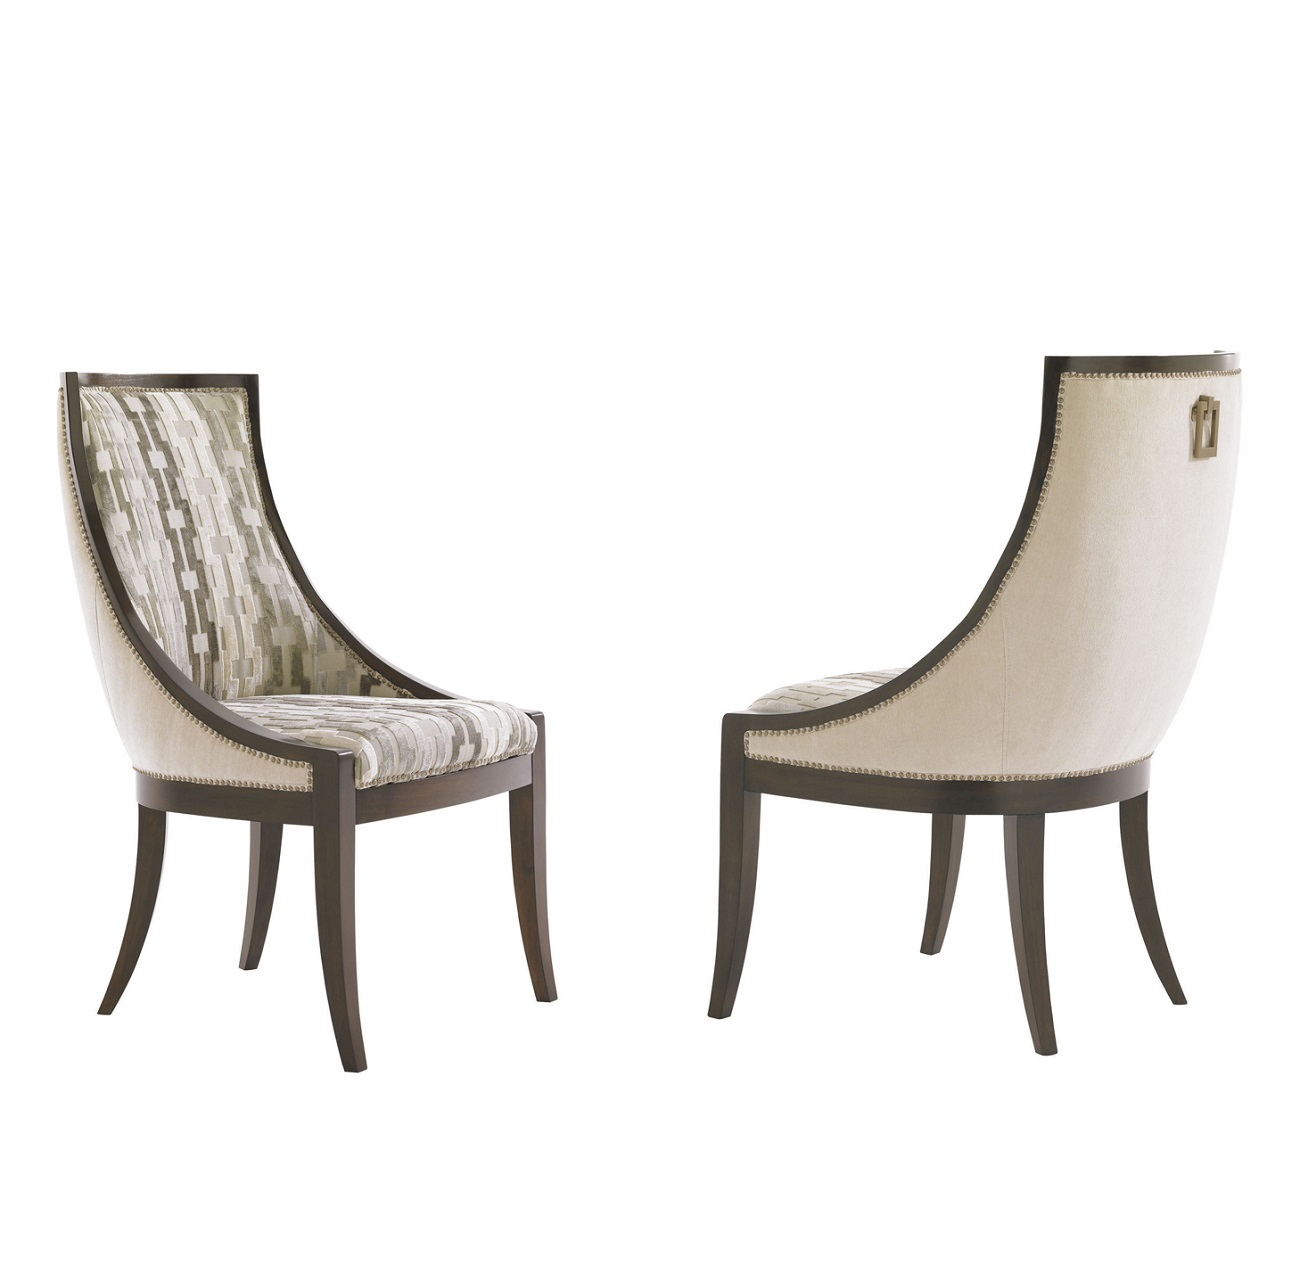 Tower Place Talbott Host Dining Chair, Lexington Tufted Dining Chairs For Sale